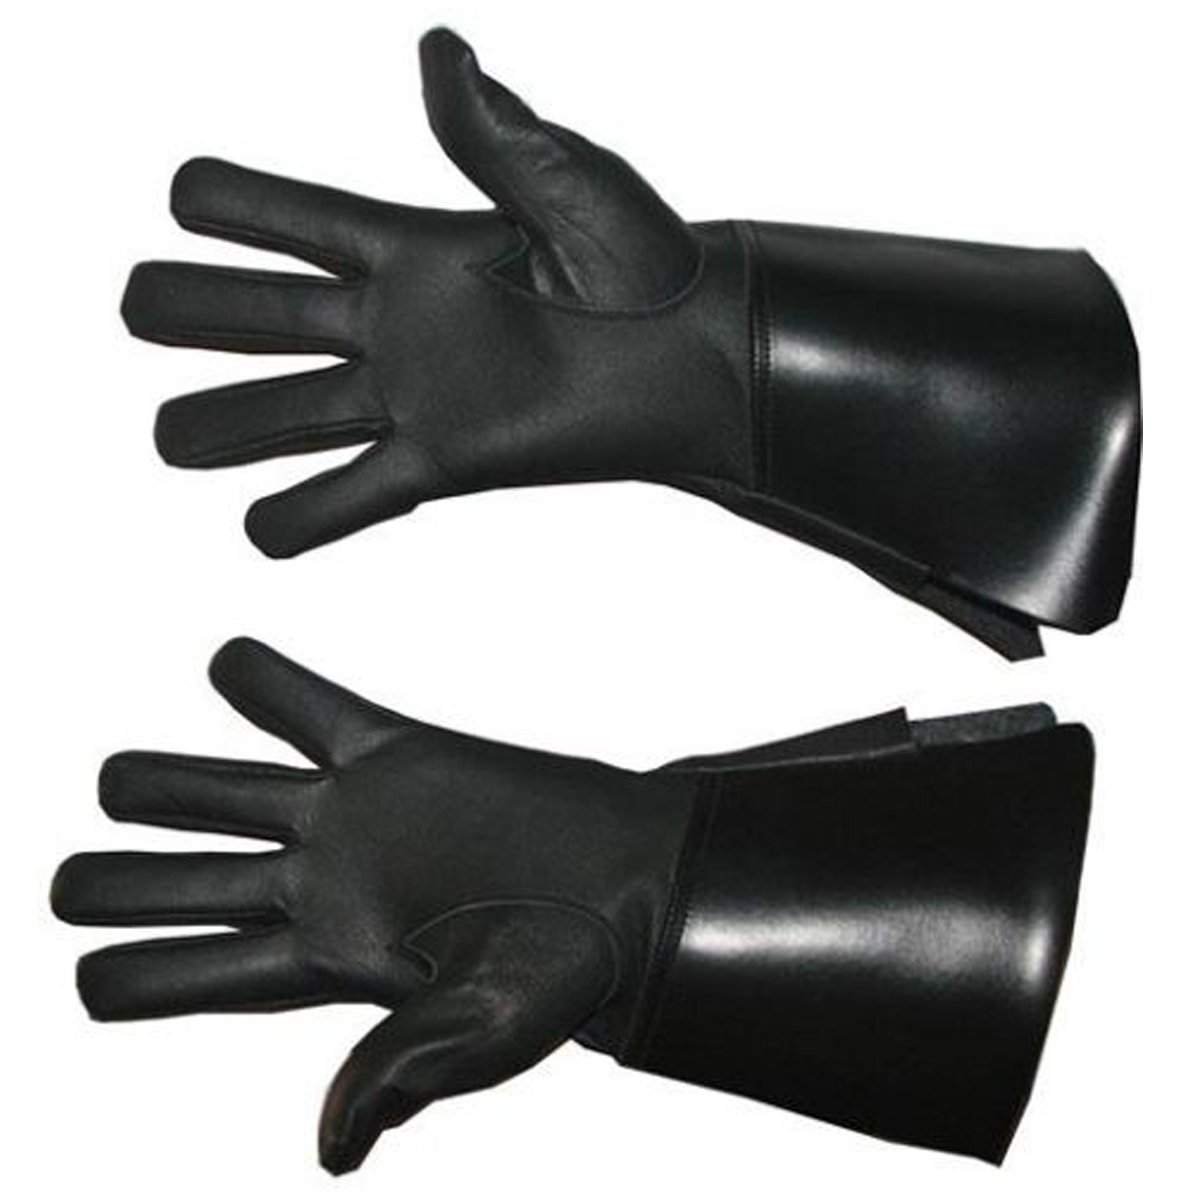 NEW WHITE/BLACK GAUNTLETS REAL LEATHER PIPER DRUMMER QUALITY LEATHER GLOVES Star Leather Band Glove Piper Drummer Glove. GAUNTL